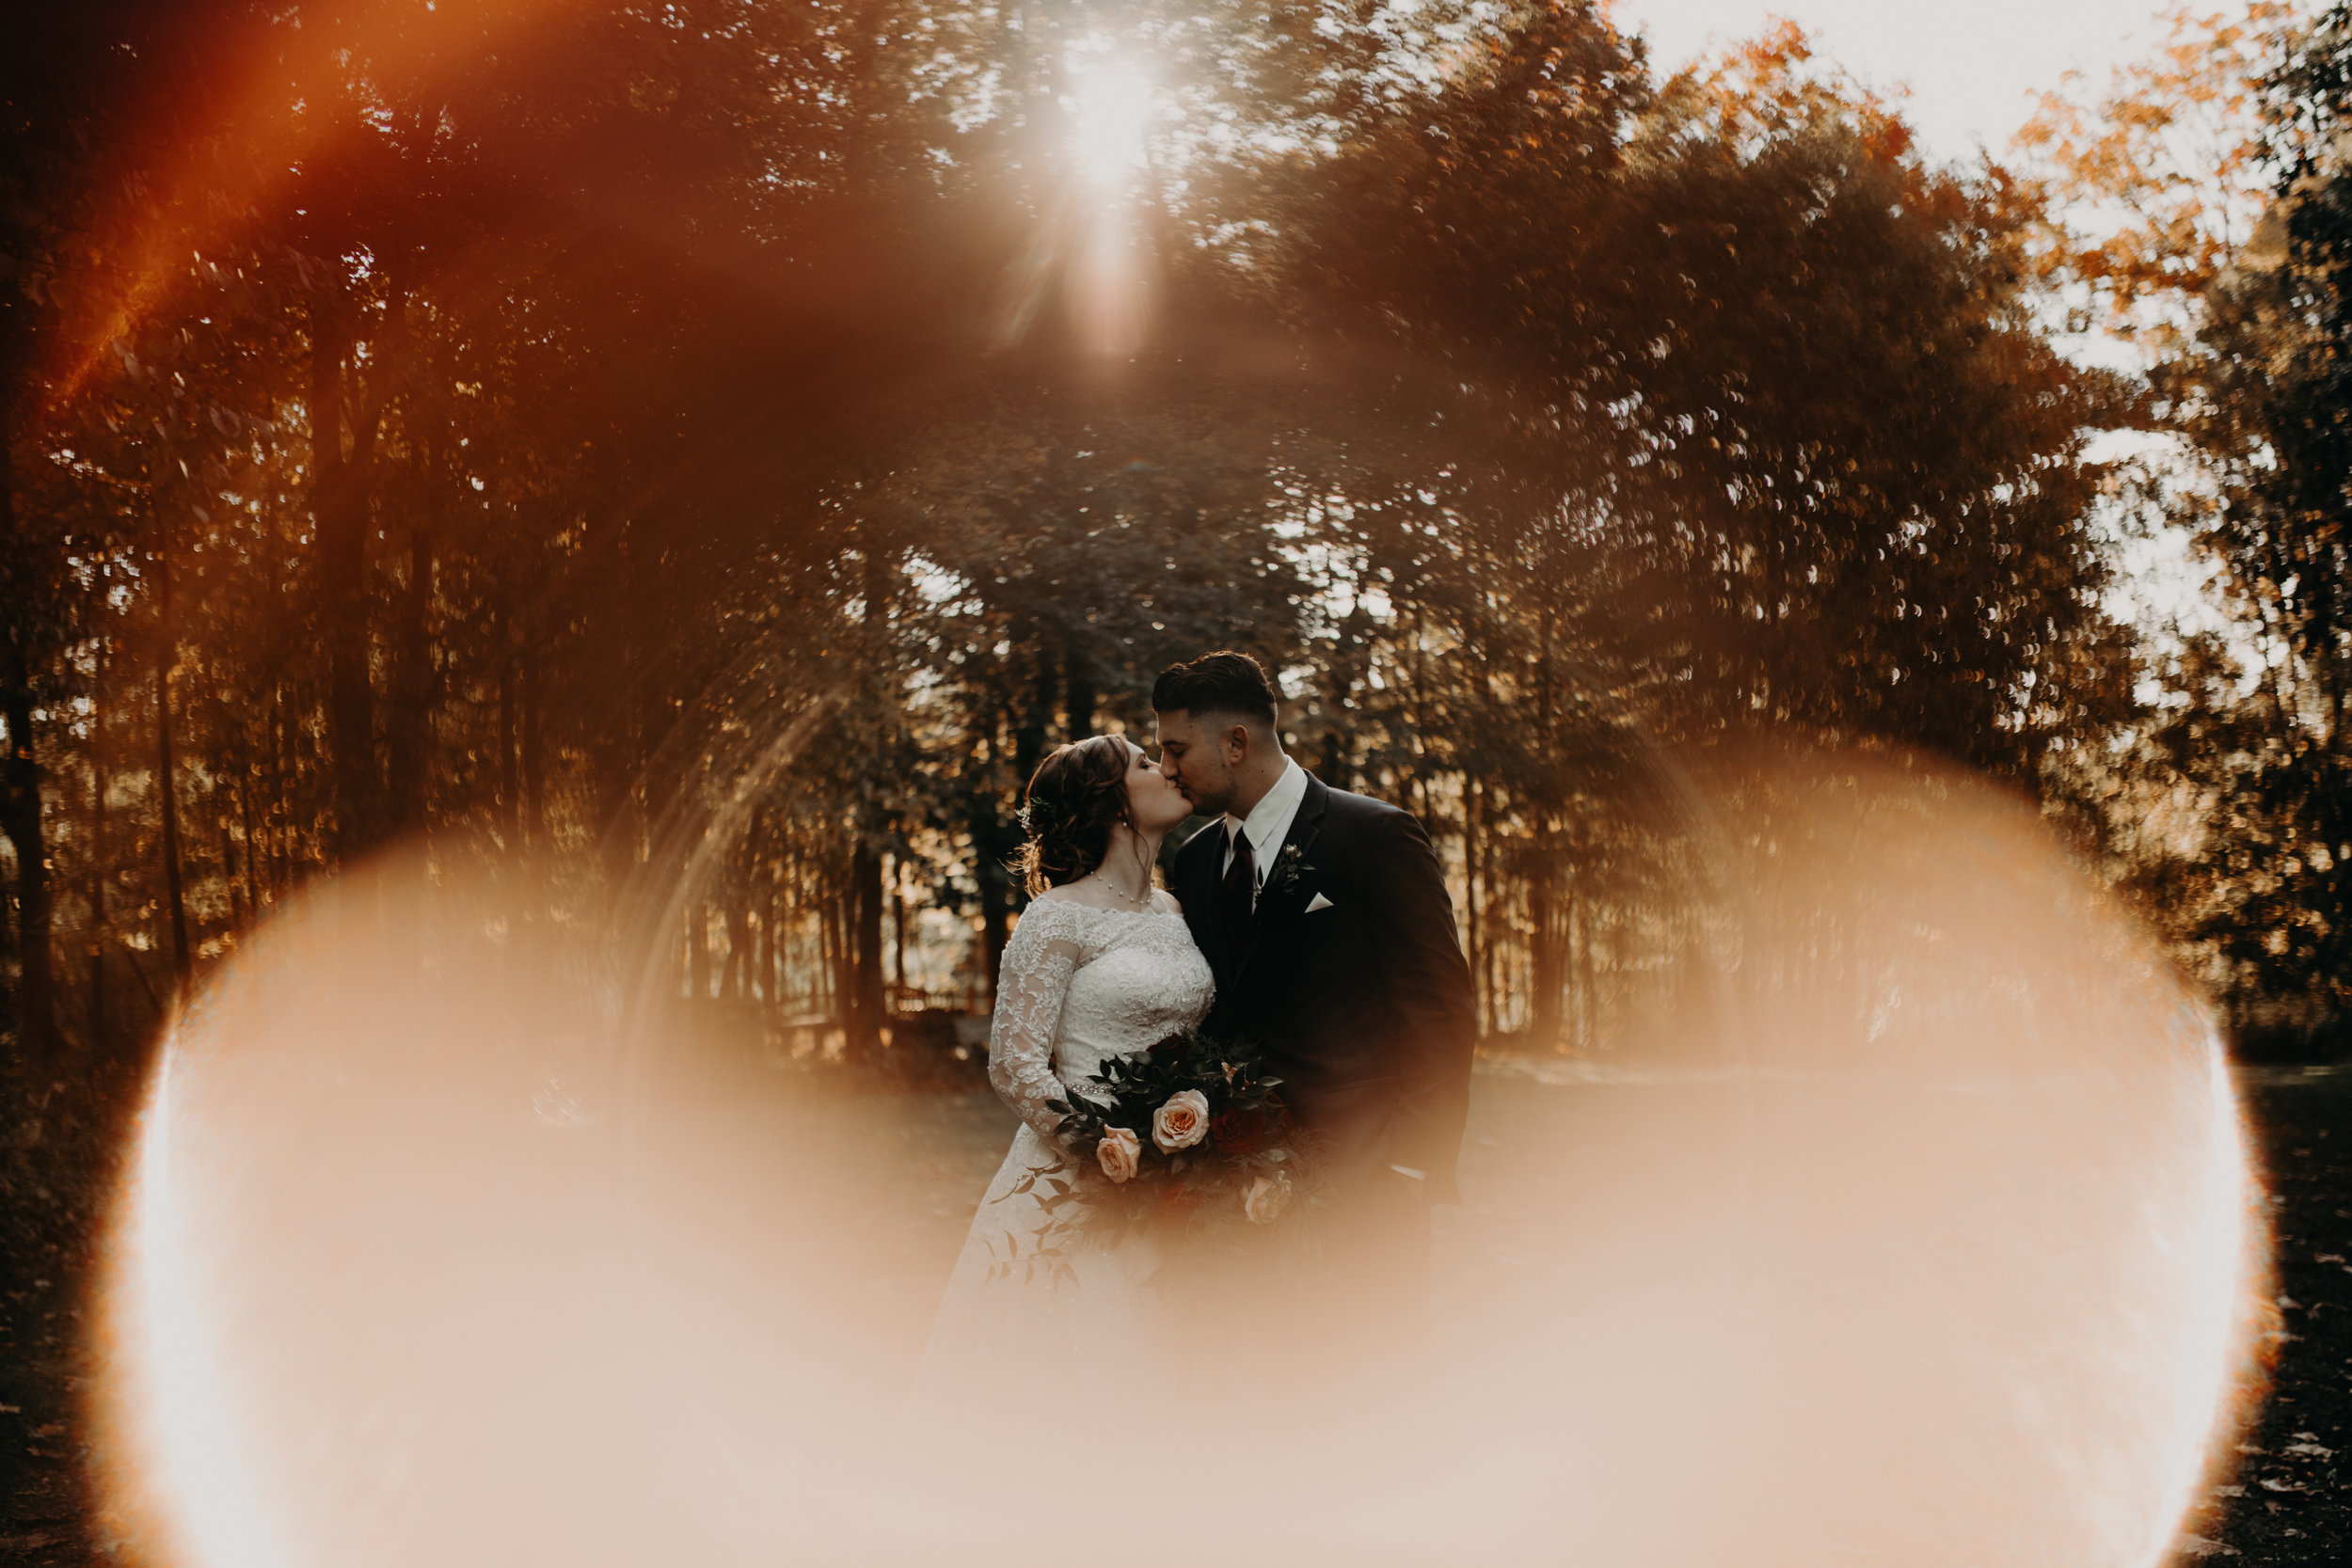 Pine Wedding Package | 3500 - Consult MeetingEngagement Session IncludedTwo Photographers10 Hour CoveragePrinting, Posting and Sharing ReleaseAccess to Print Lab